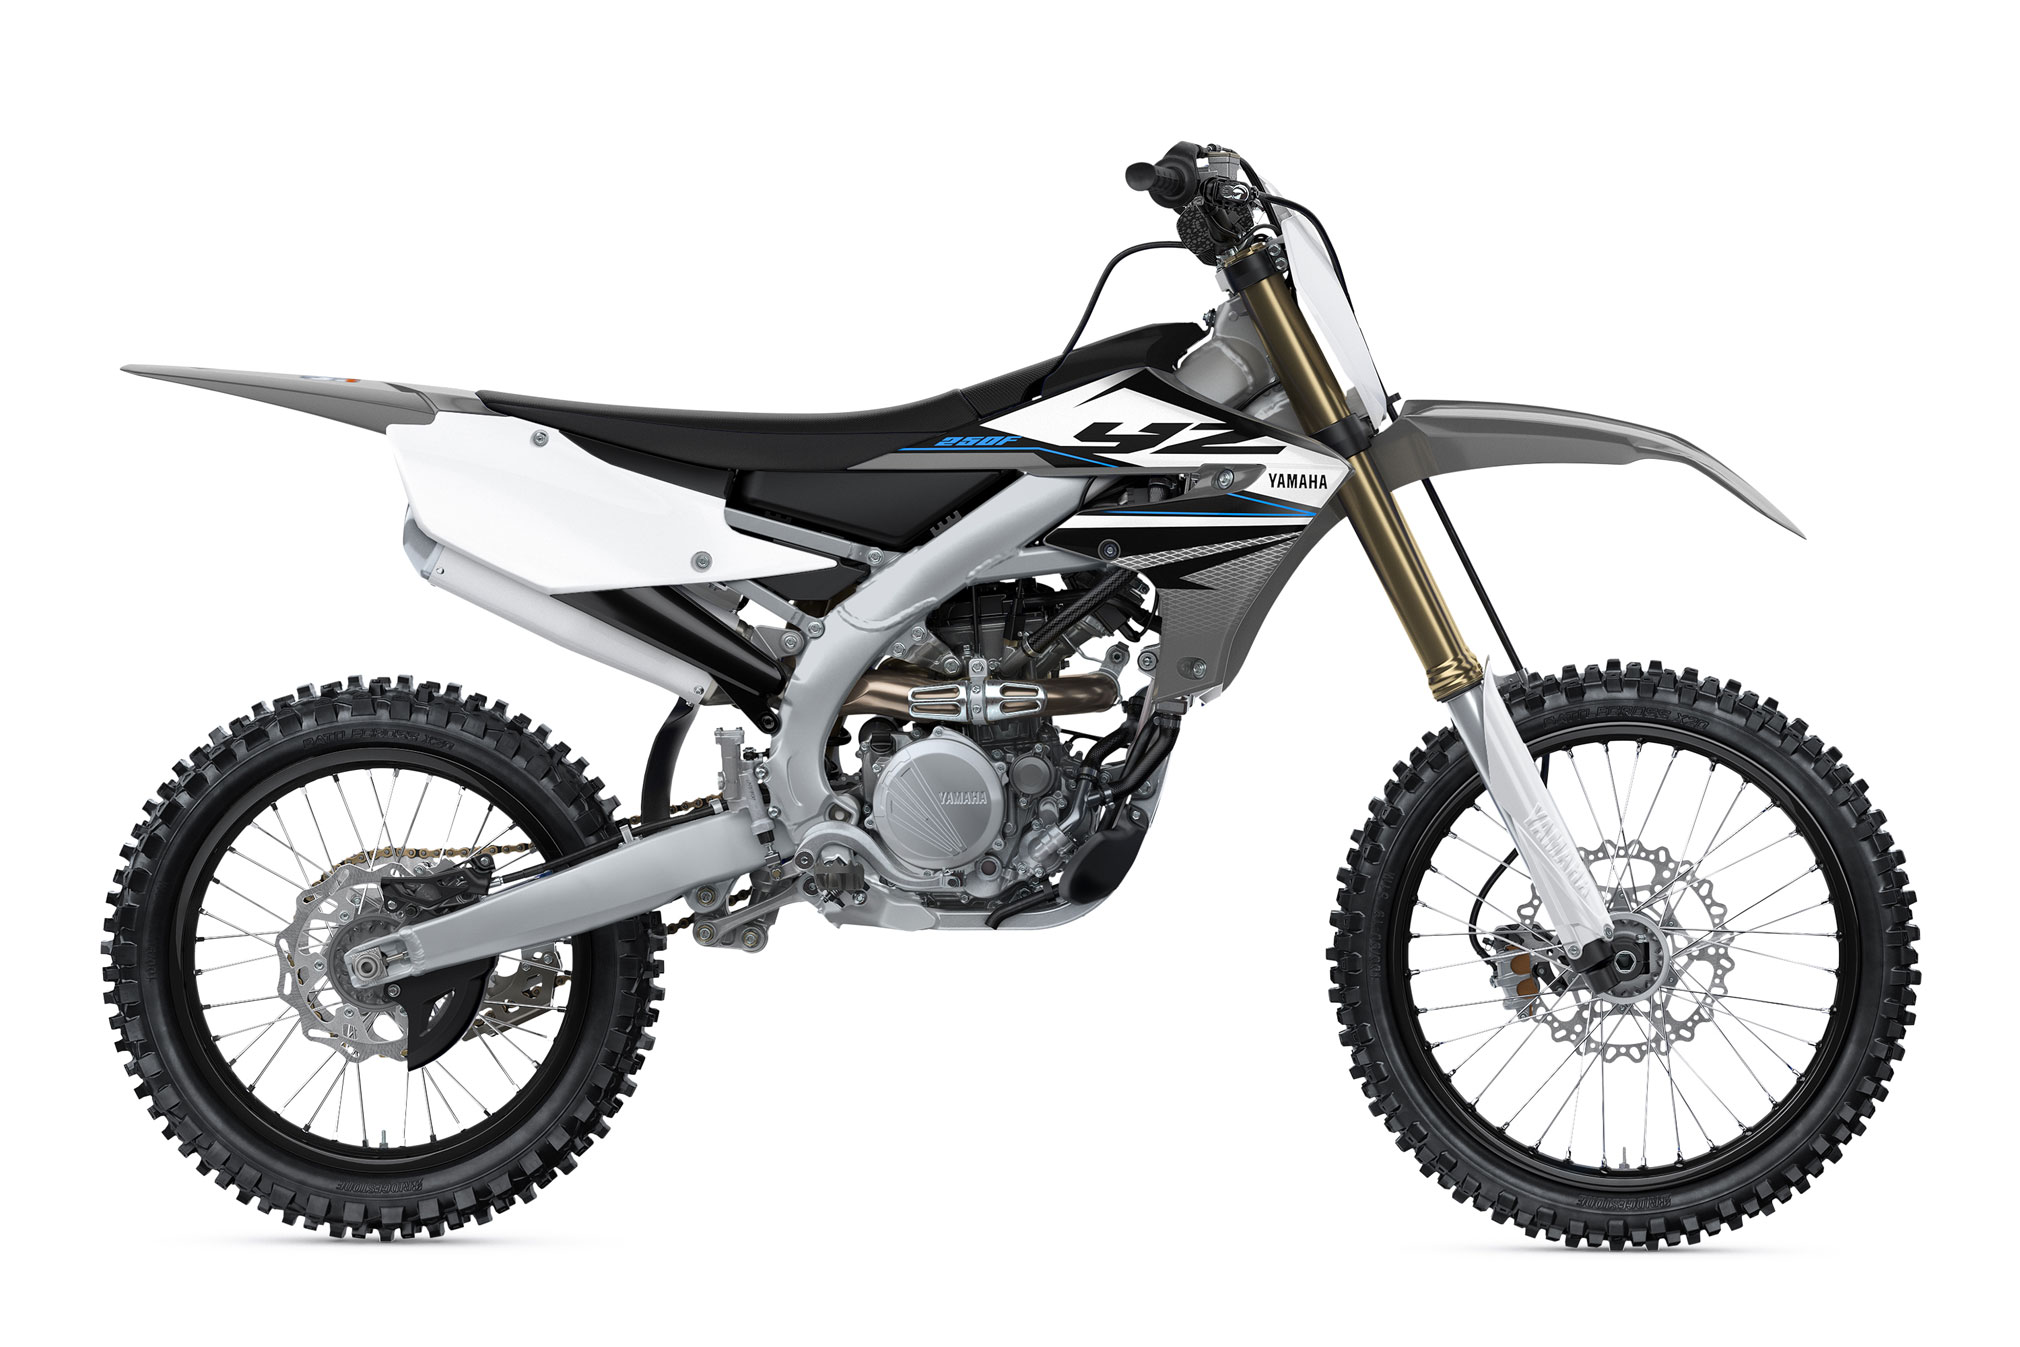 2020 Yamaha YZ250F Guide • Total Motorcycle